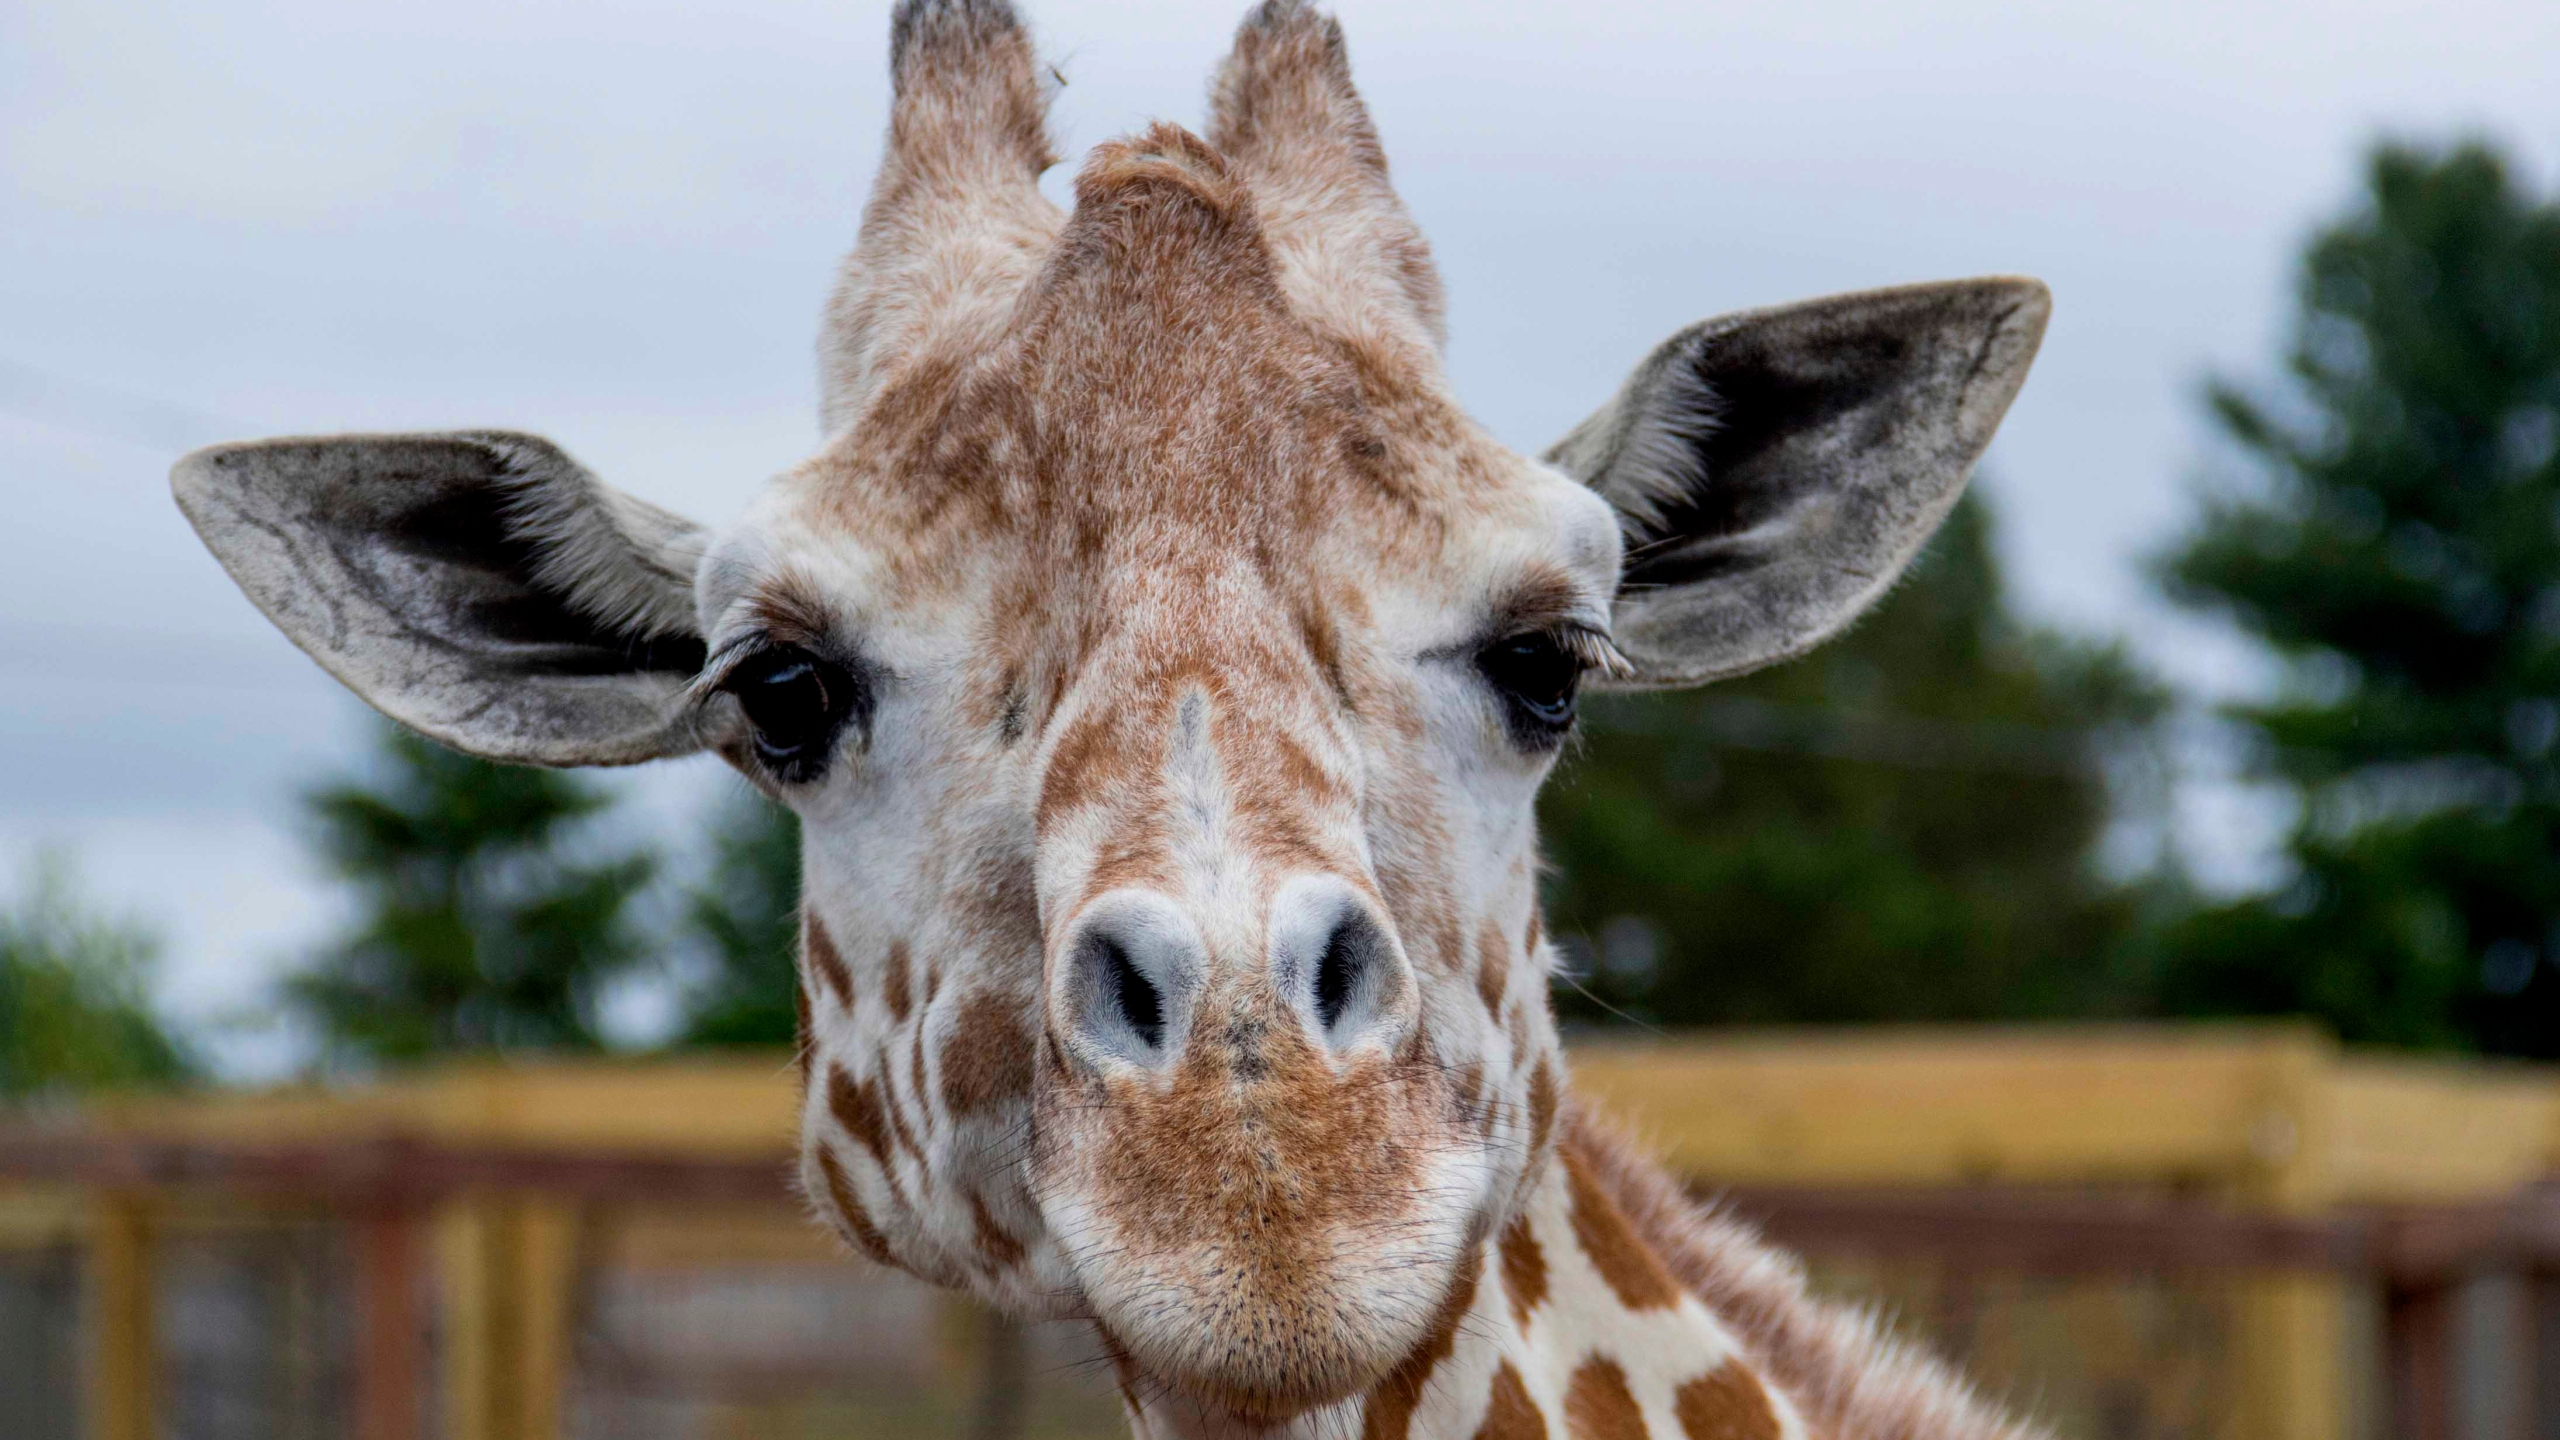 This undated photo, provided by Animal Adventure Park on Sunday, June 3, 2018, shows a giraffe named April at Animal Adventure Park in Harpursville, N.Y. (Animal Adventure Park via AP)